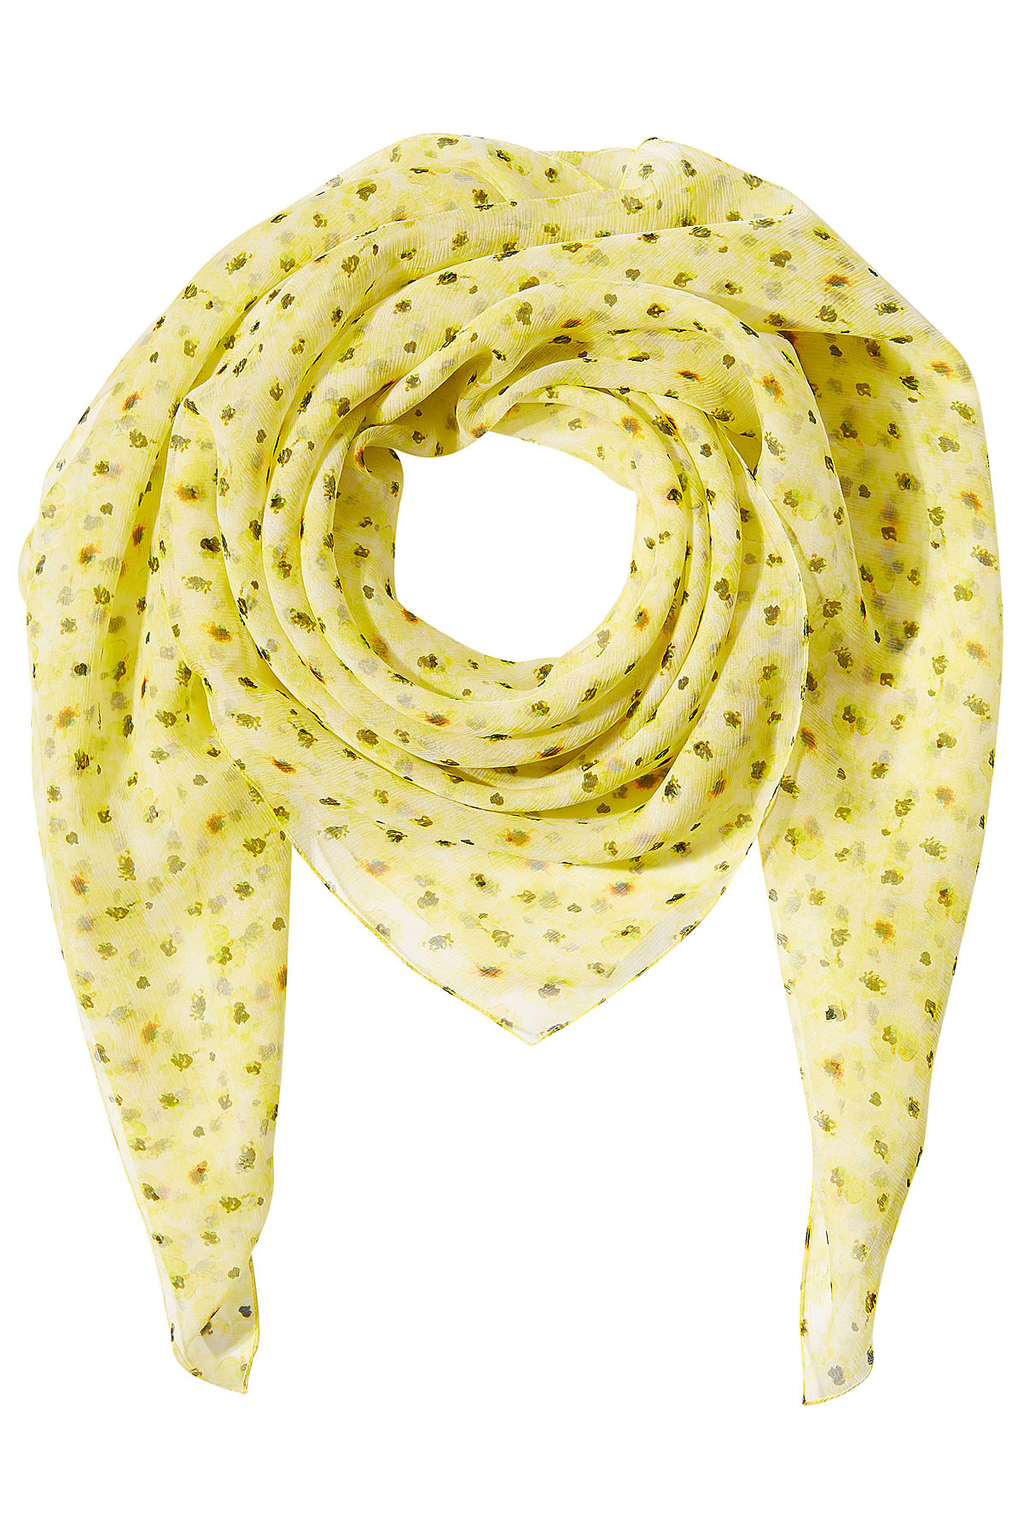 Printed Silk Scarf Multicolored - predominant colour: yellow; occasions: casual; type of pattern: heavy; style: square; size: large; material: silk; pattern: patterned/print; season: s/s 2016; wardrobe: highlight